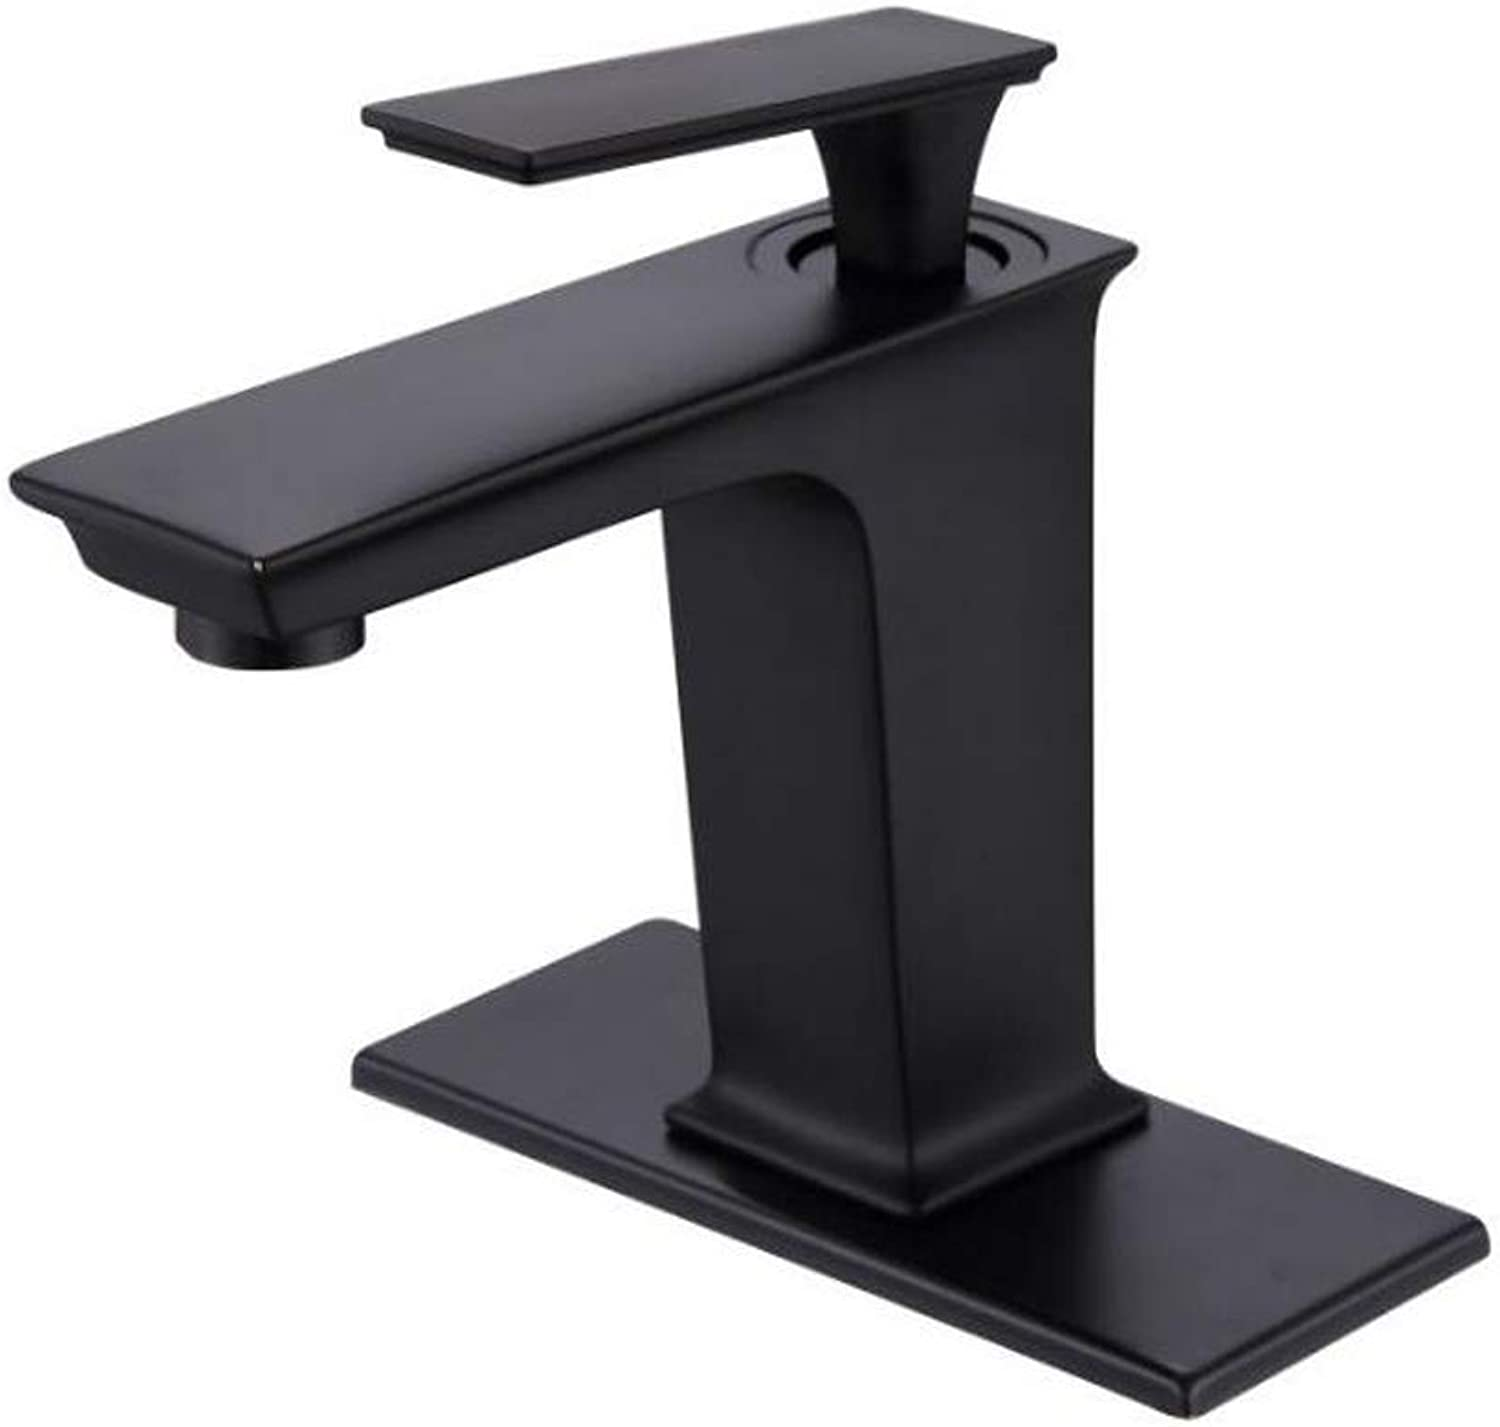 Bathroom Faucet,Black Bathroom Sink Faucet European Style All-Copper Antique Hot and Cold Water Brushed Plating Counter top Basin Mixer tap.